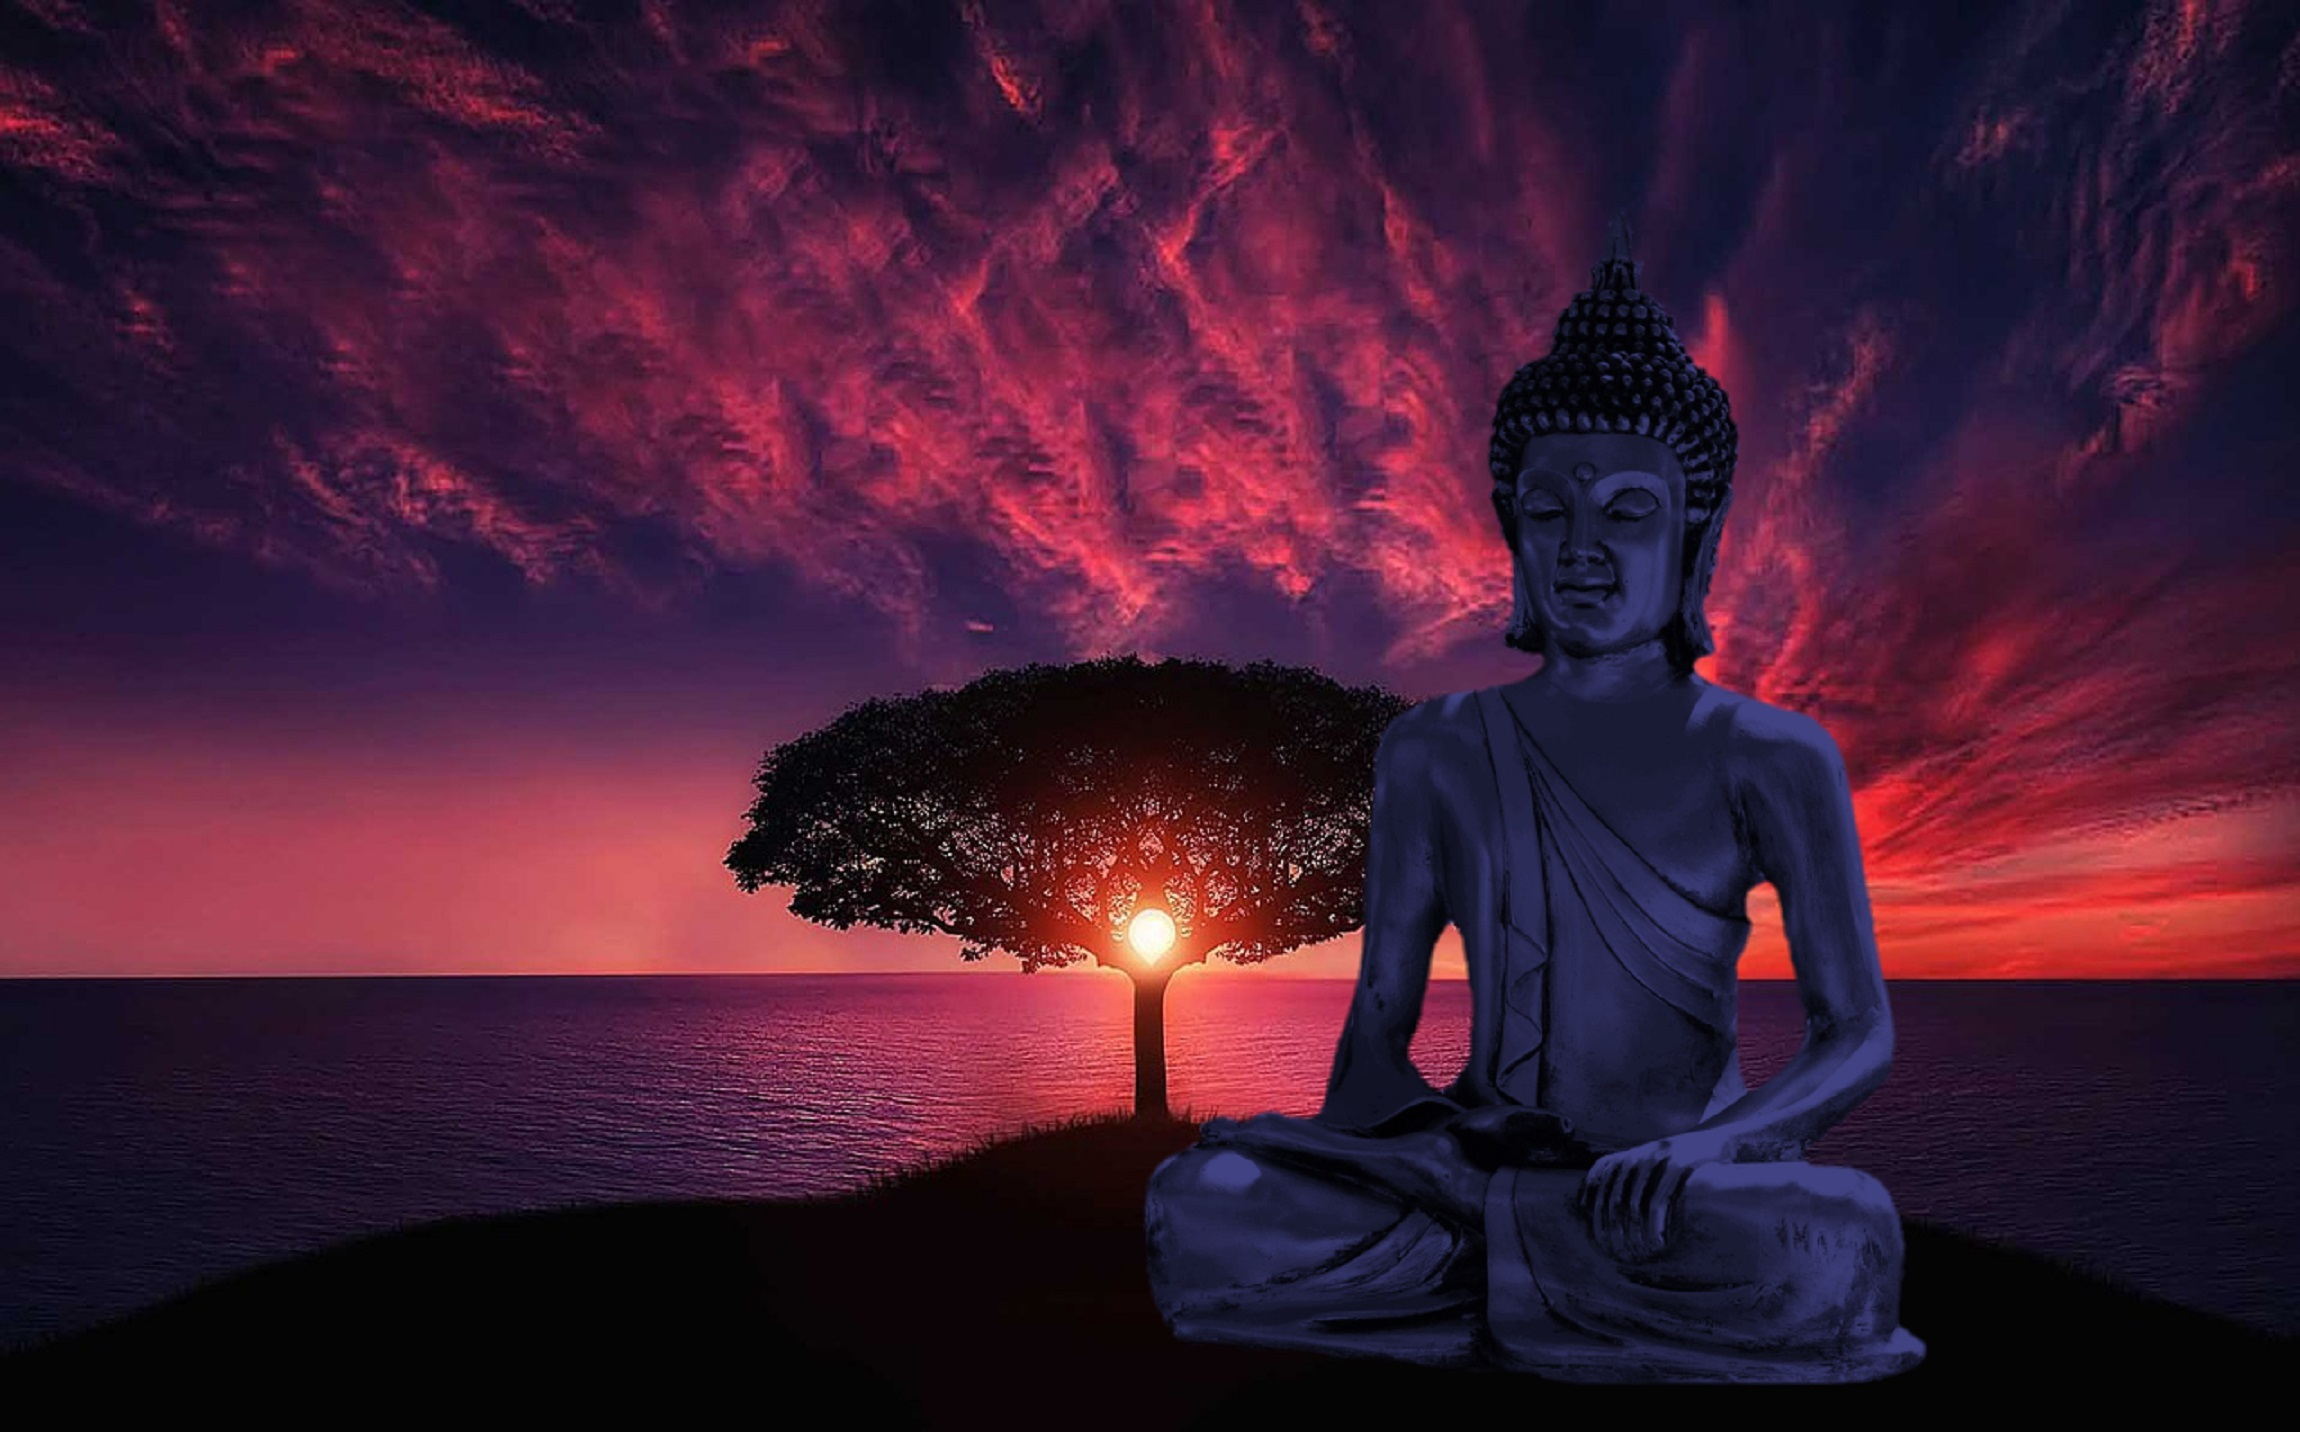 buddhism in asia Early traditions buddhism reached southeast asia both directly over sea from india and indirectly from central asia and china in a process that spanned most of the.